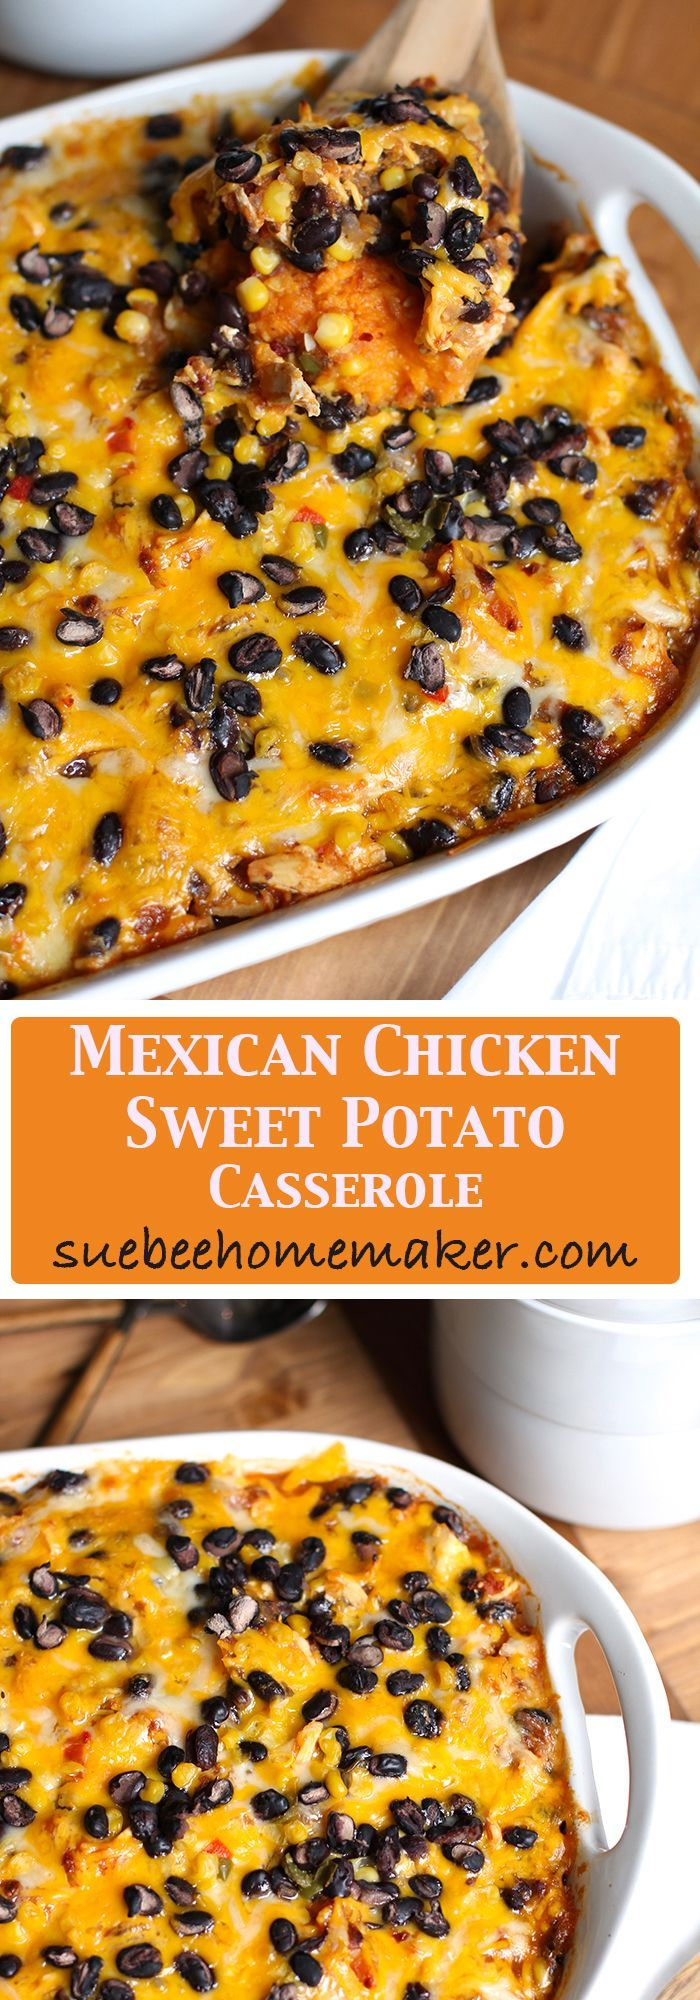 Mexican Chicken and Sweet Potato Casserole is a healthy Tex-Mex dish, combining sweet potatoes with shredded chicken, beans, and a spicy sauce!